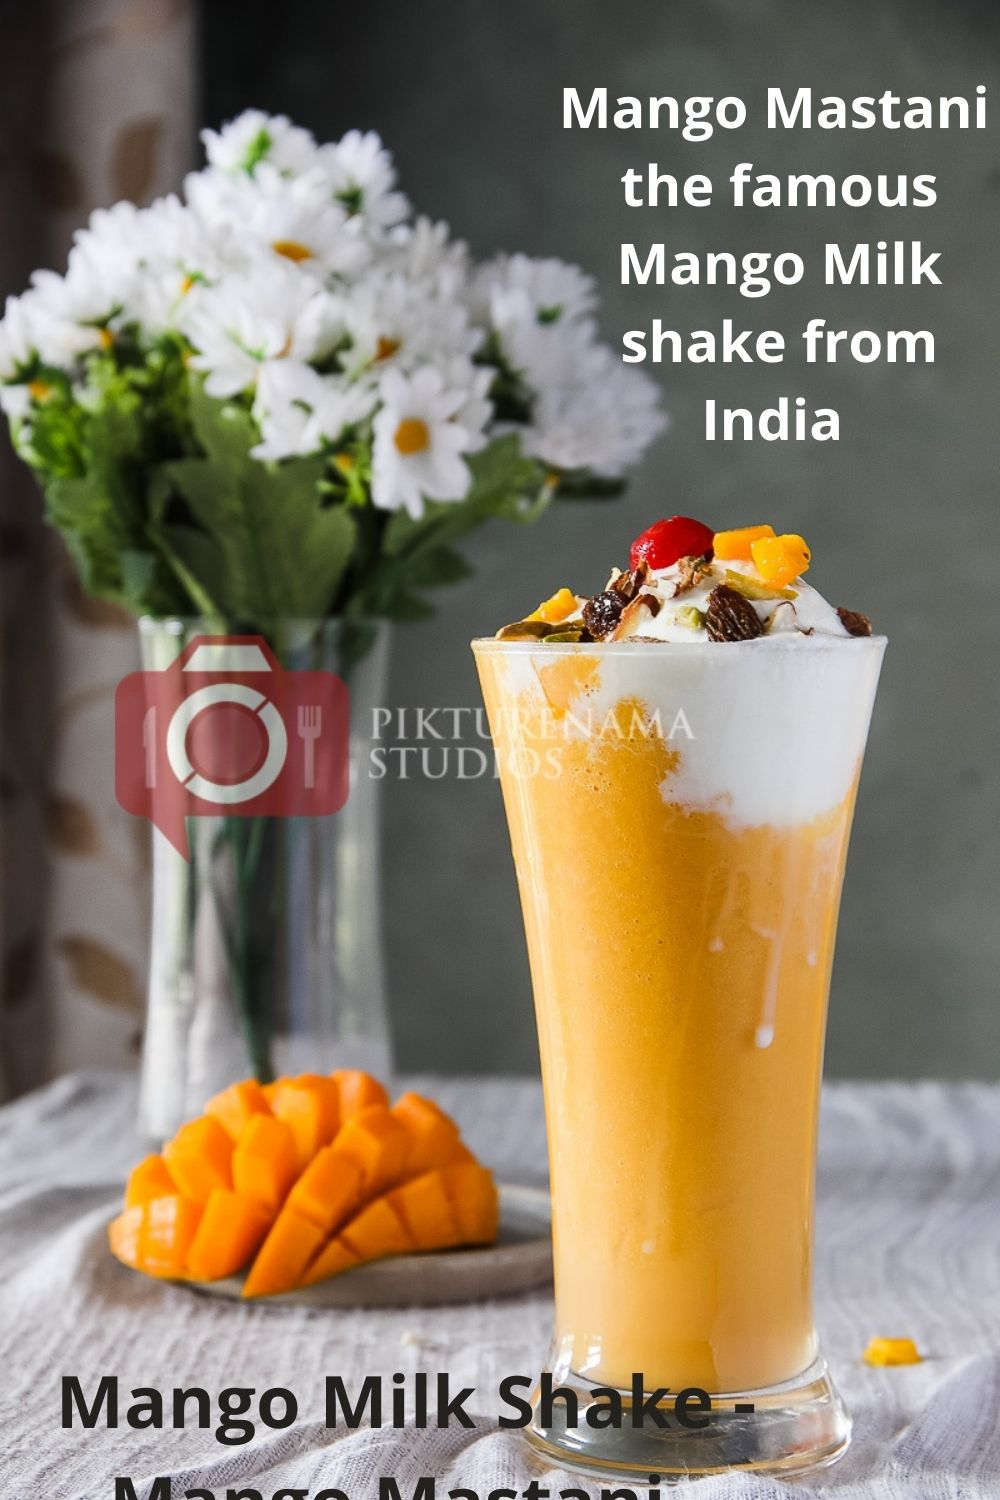 Mango Mastani the cool Summer drink with Mango for Pinterest - 2